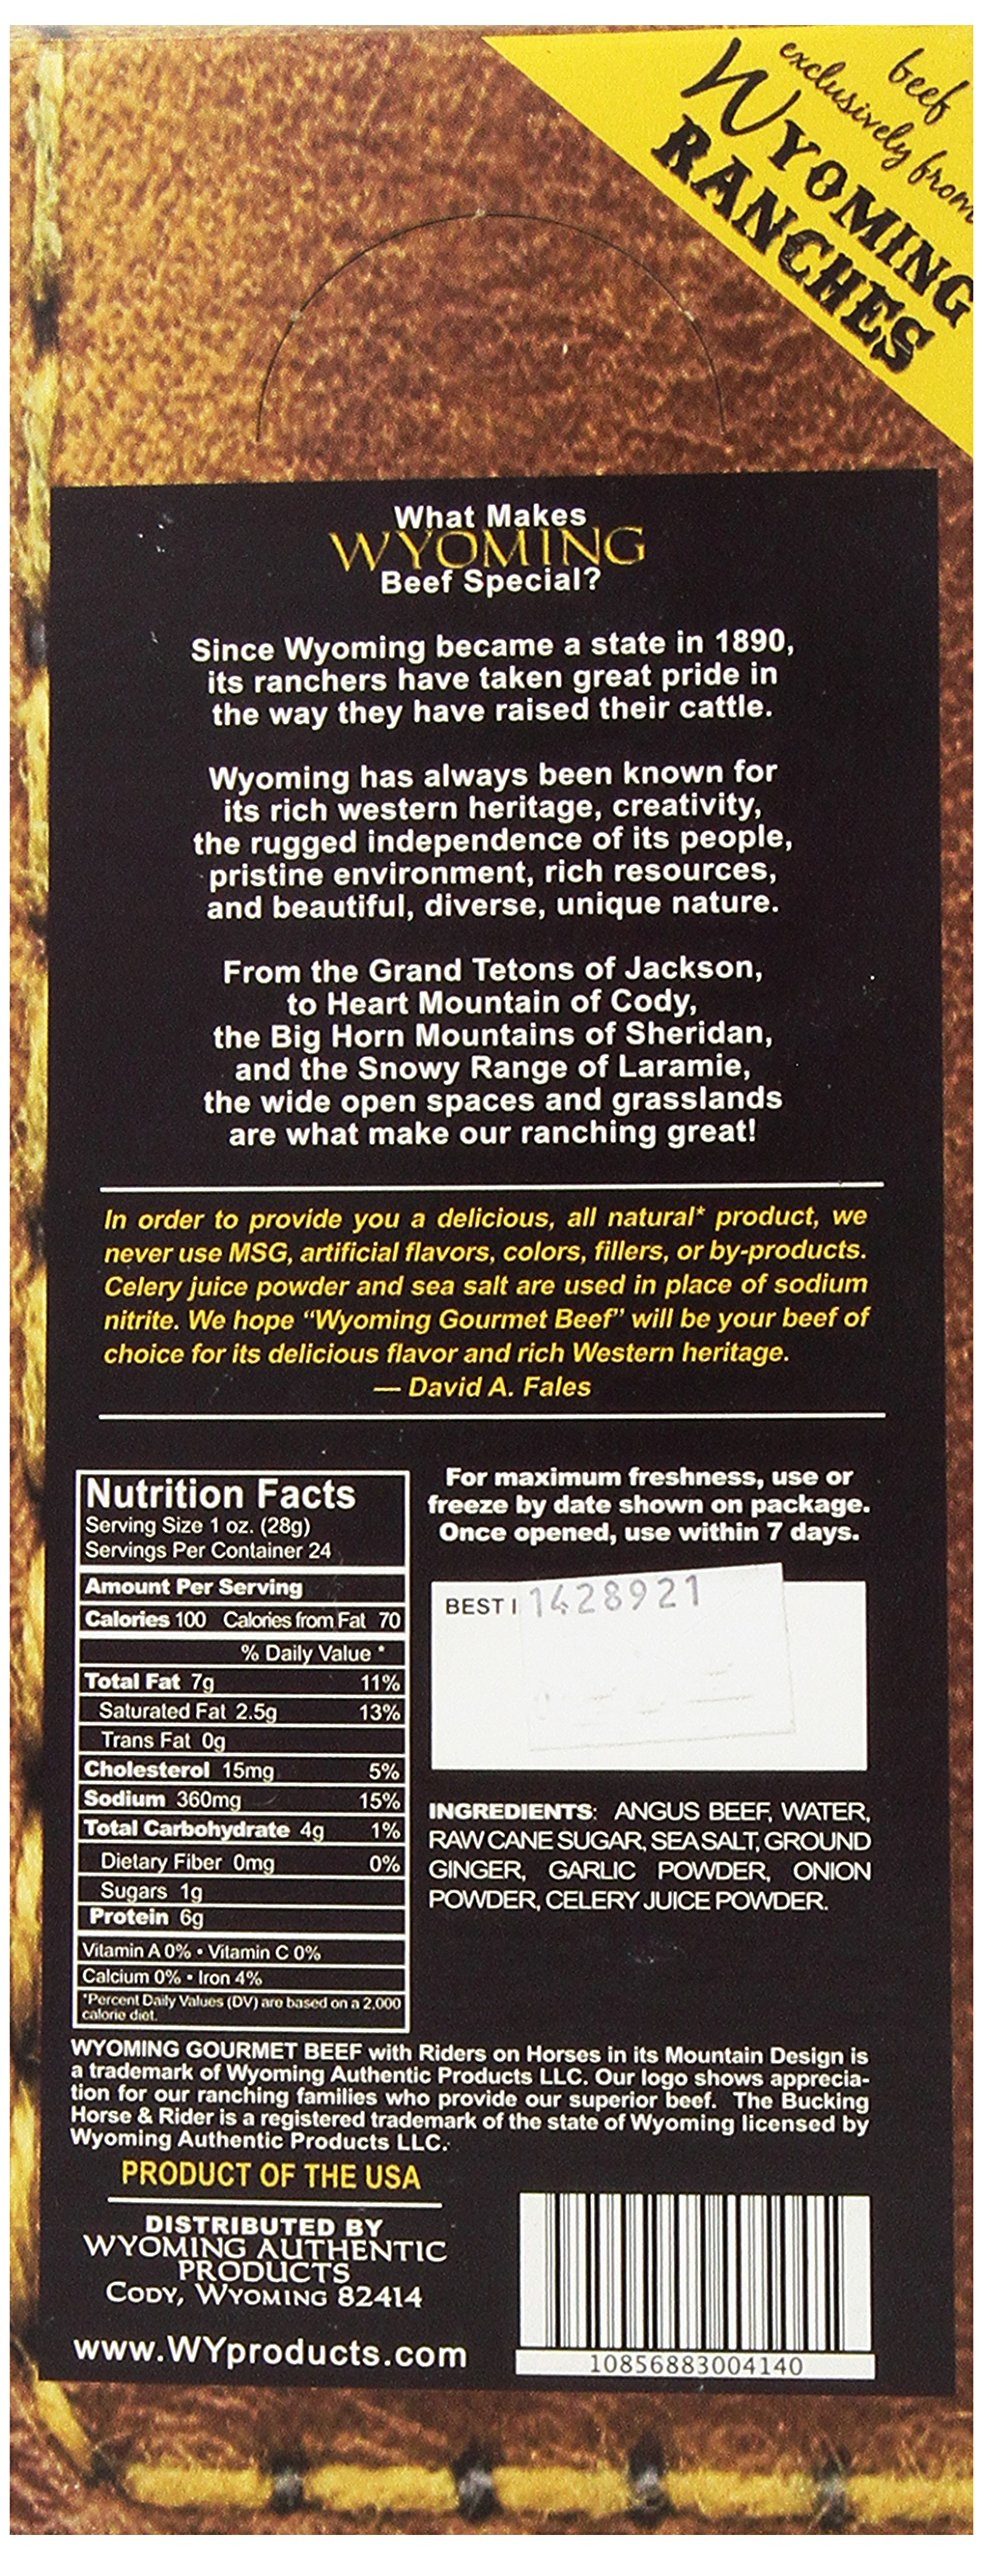 Wyoming Gourmet Beef All Natural Angus Ginger and Garlic Stick, 1 Ounce (Pack of 24)